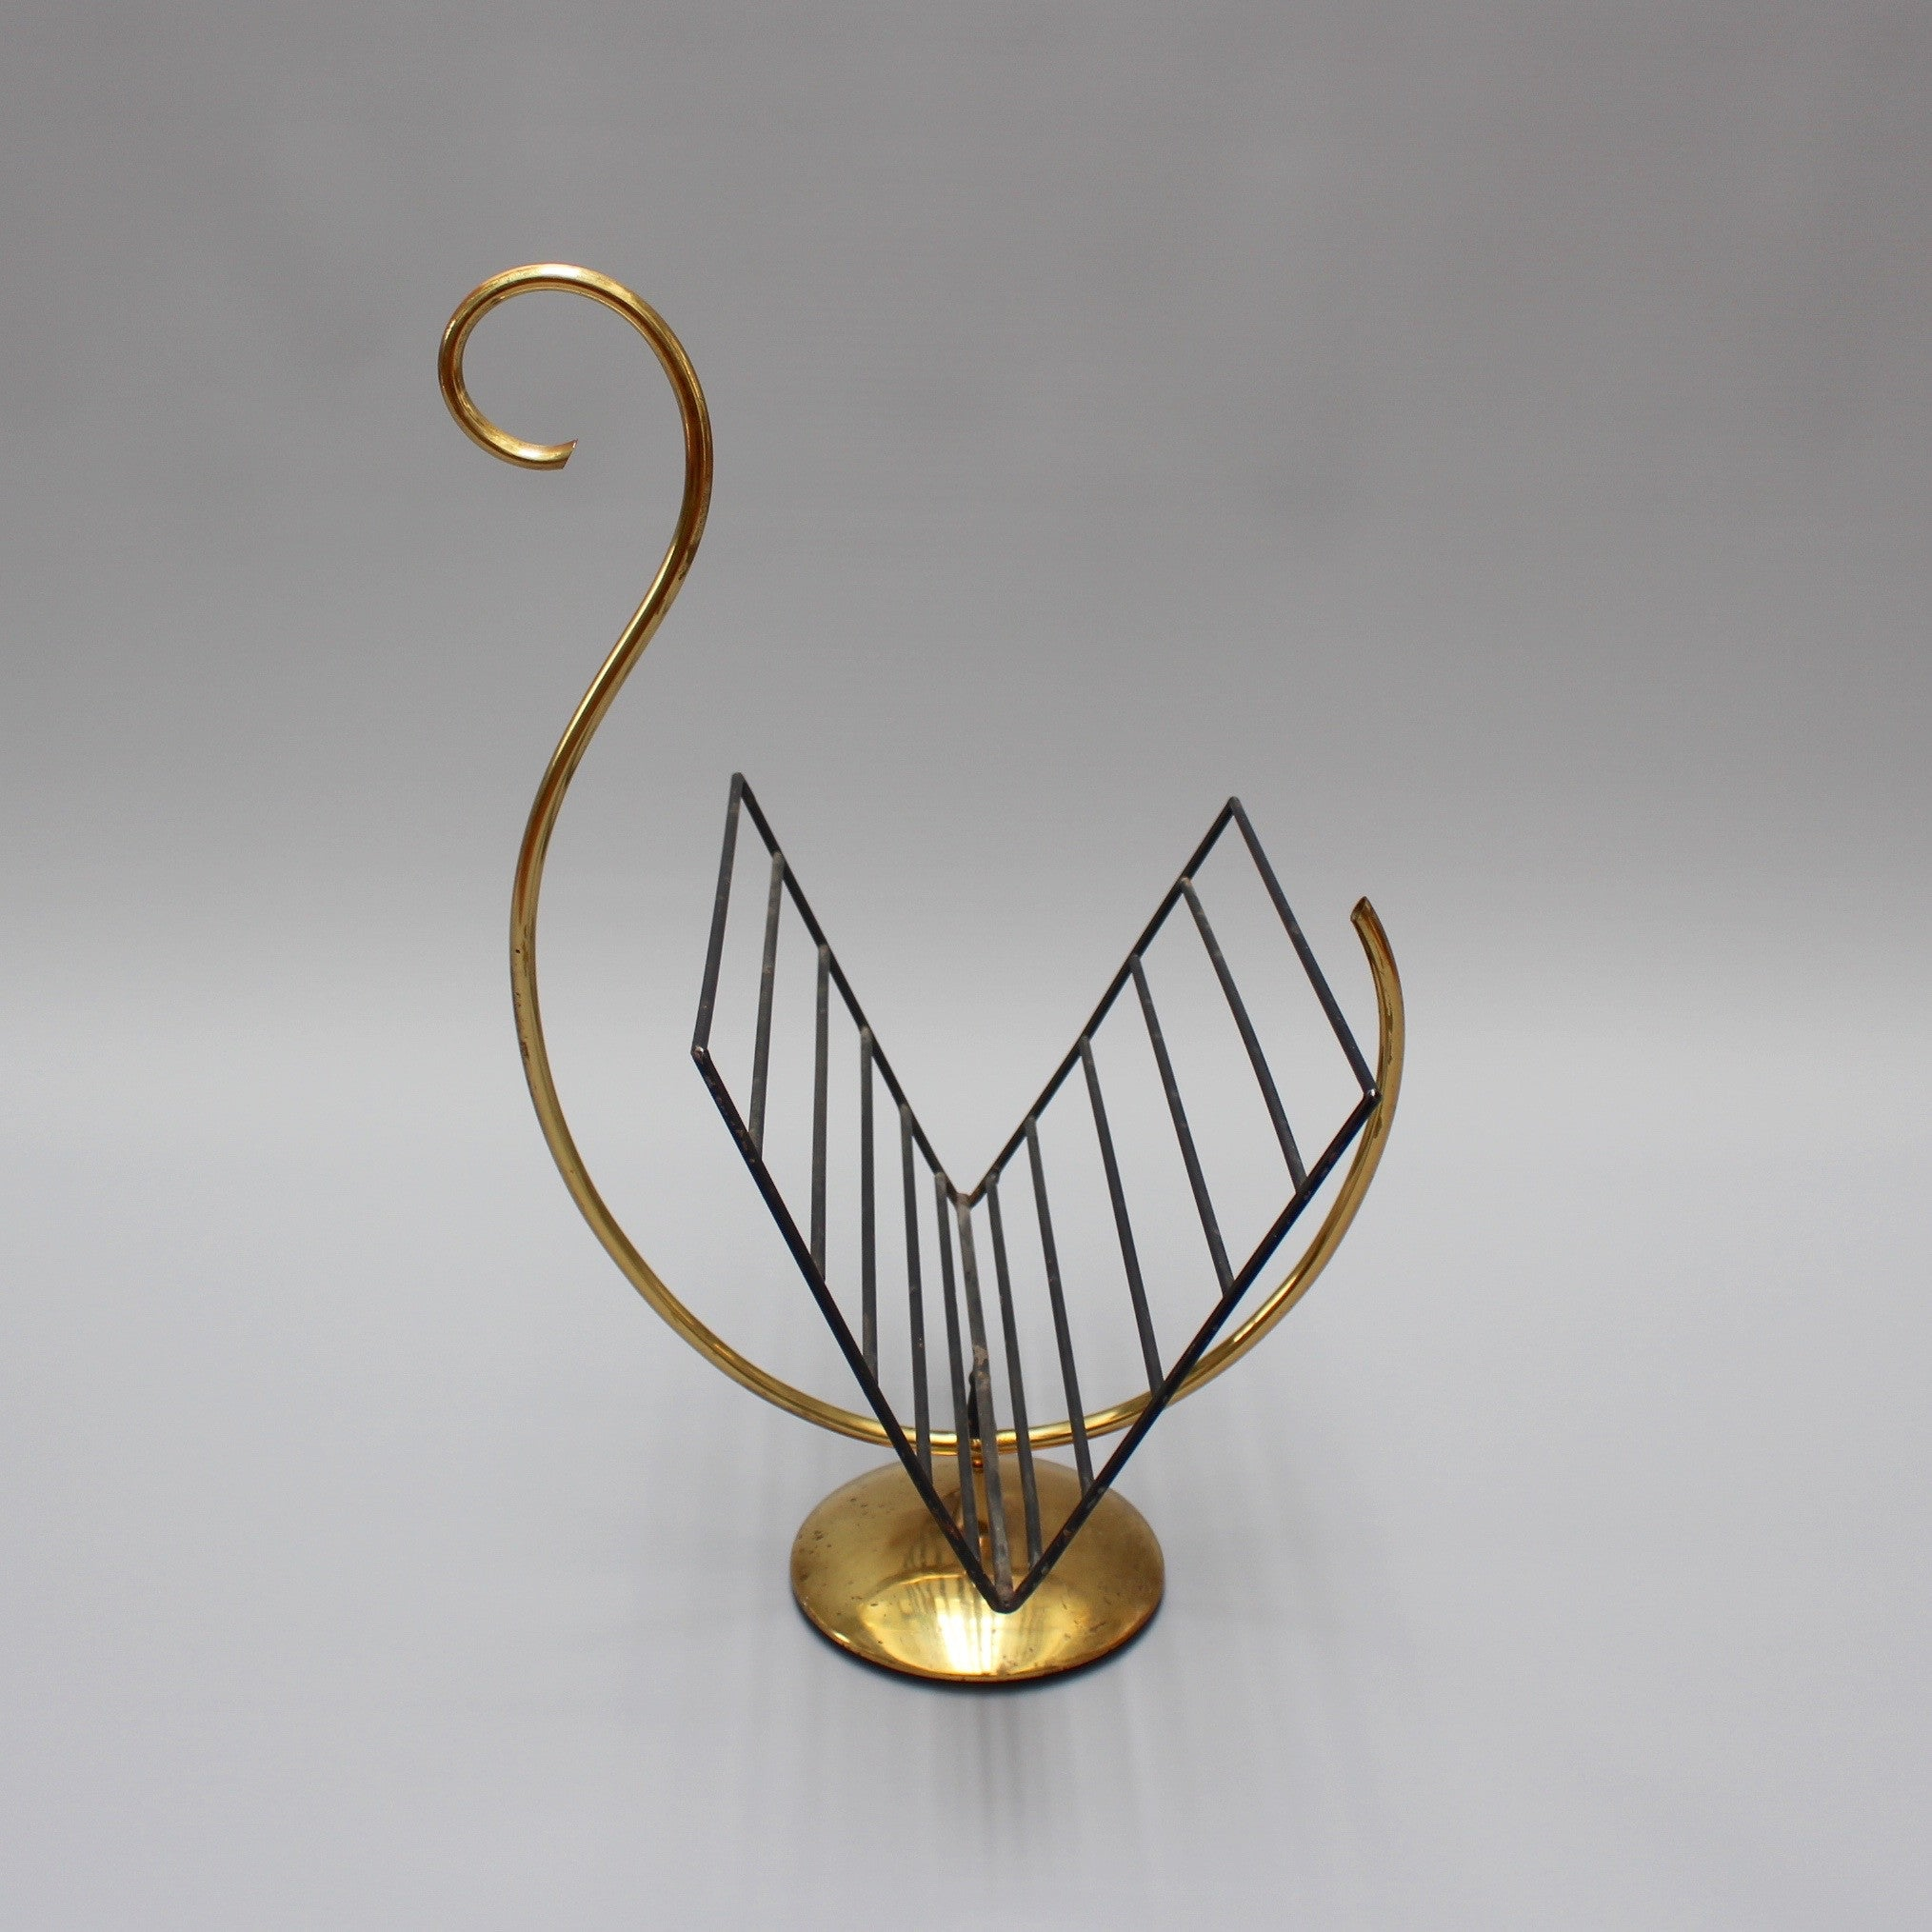 Swan-Shaped Italian Brass Magazine Stand (c. 1950s)